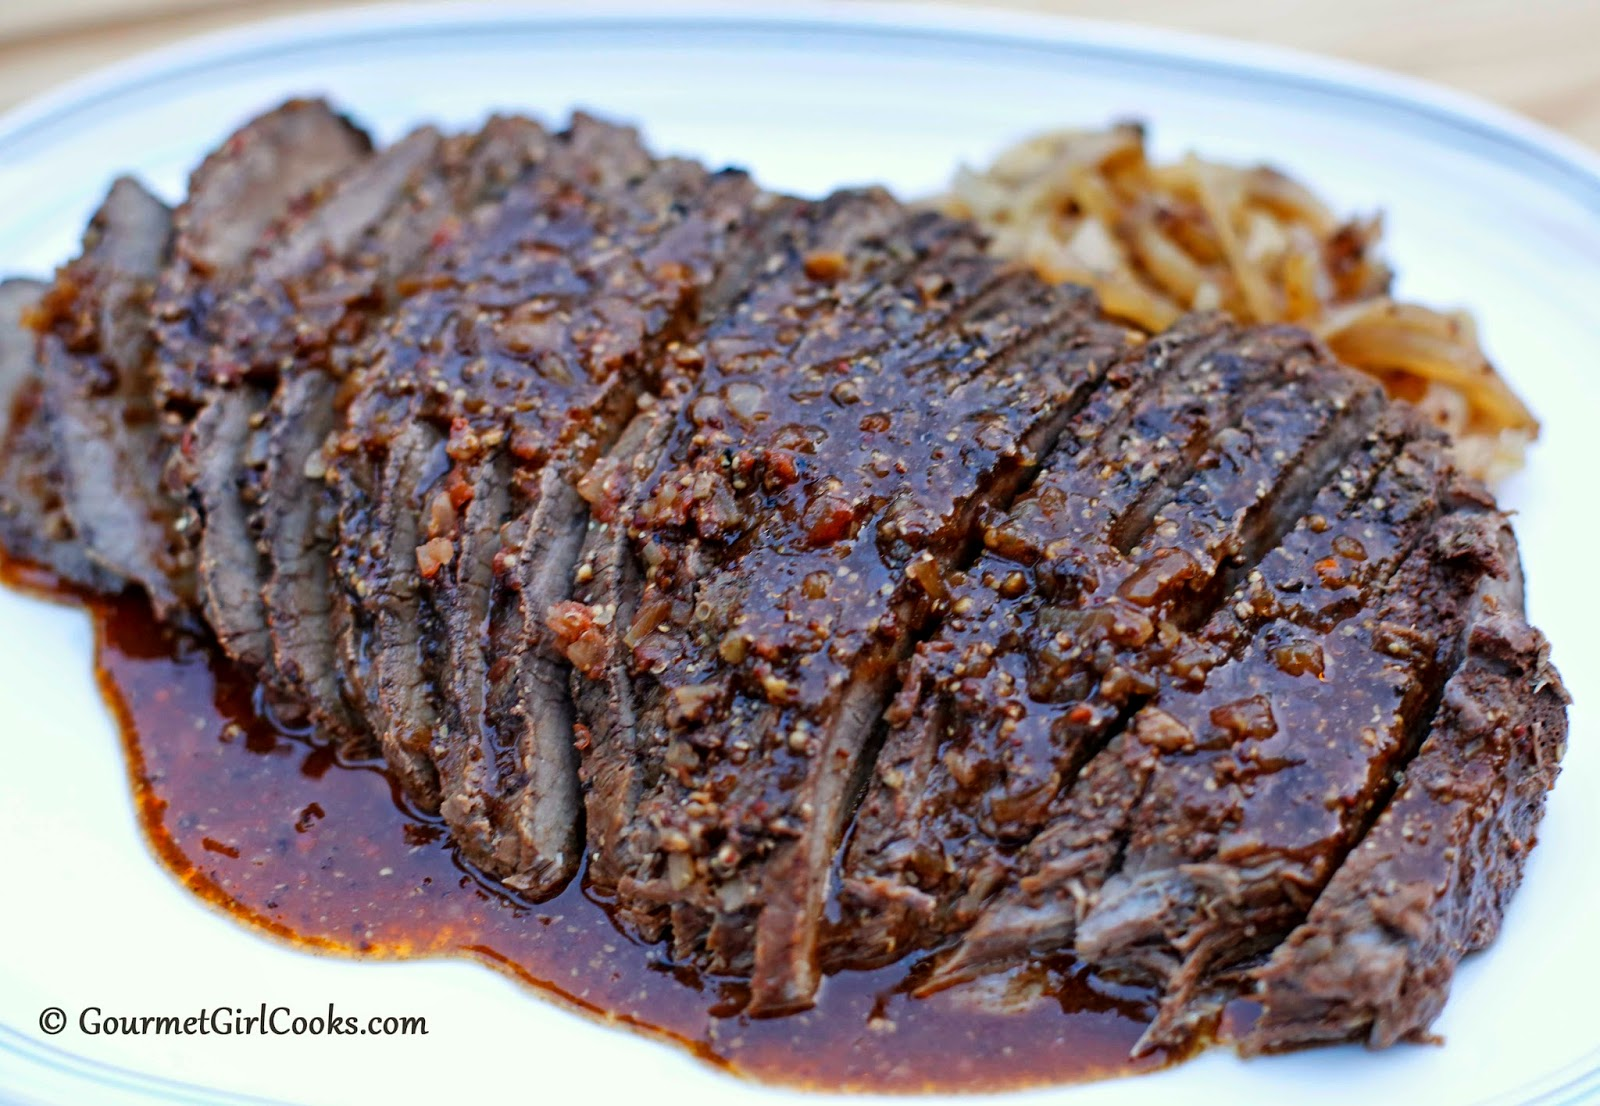 Gourmet Girl Cooks: Slow Cooked Cola Braised Brisket - Low ...